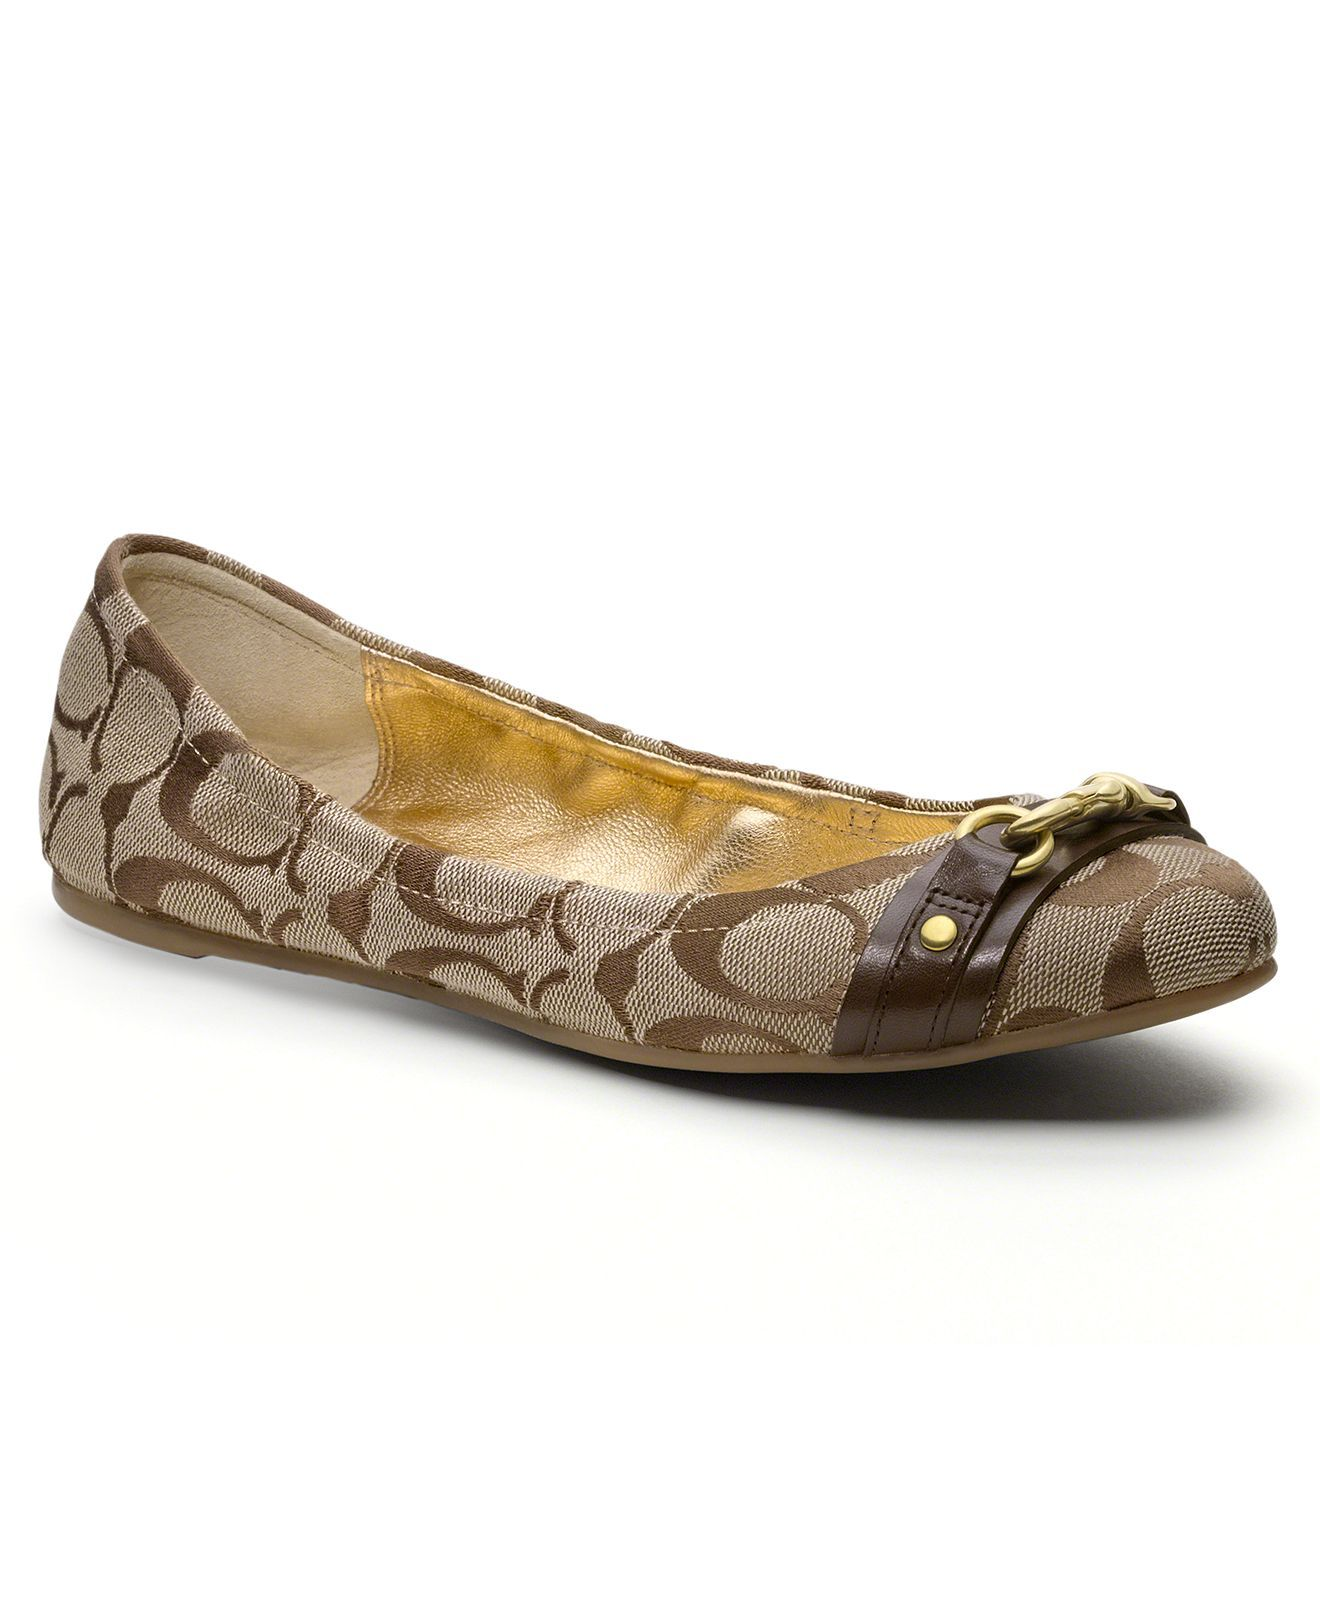 1b2c47526914 COACH DESTIN FLAT - Flats - Shoes - Macy s